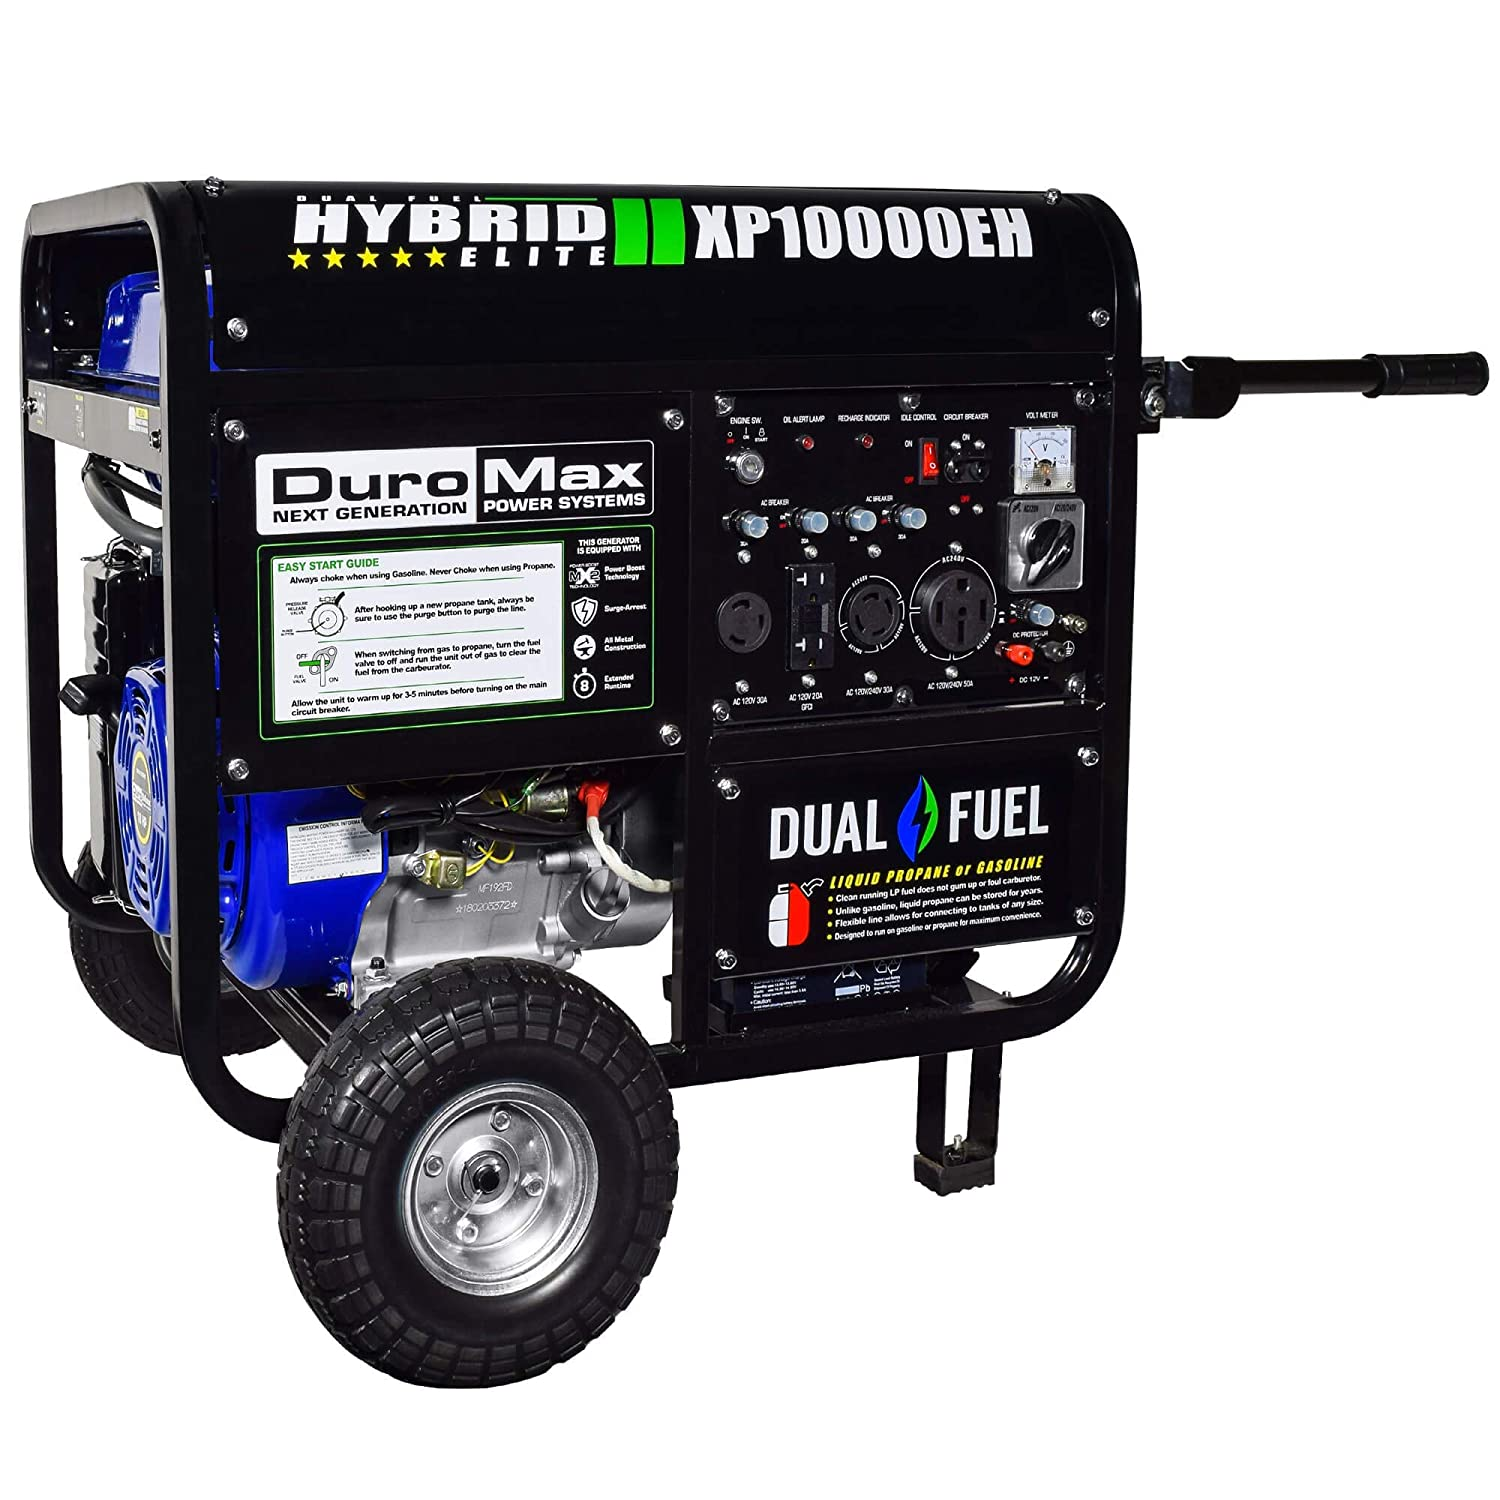 Duromax Xp10000eh 10000 Watt Dual Fuel Hybrid Generator Wiring A House For Portable W Elec Start 50 State Garden Outdoor